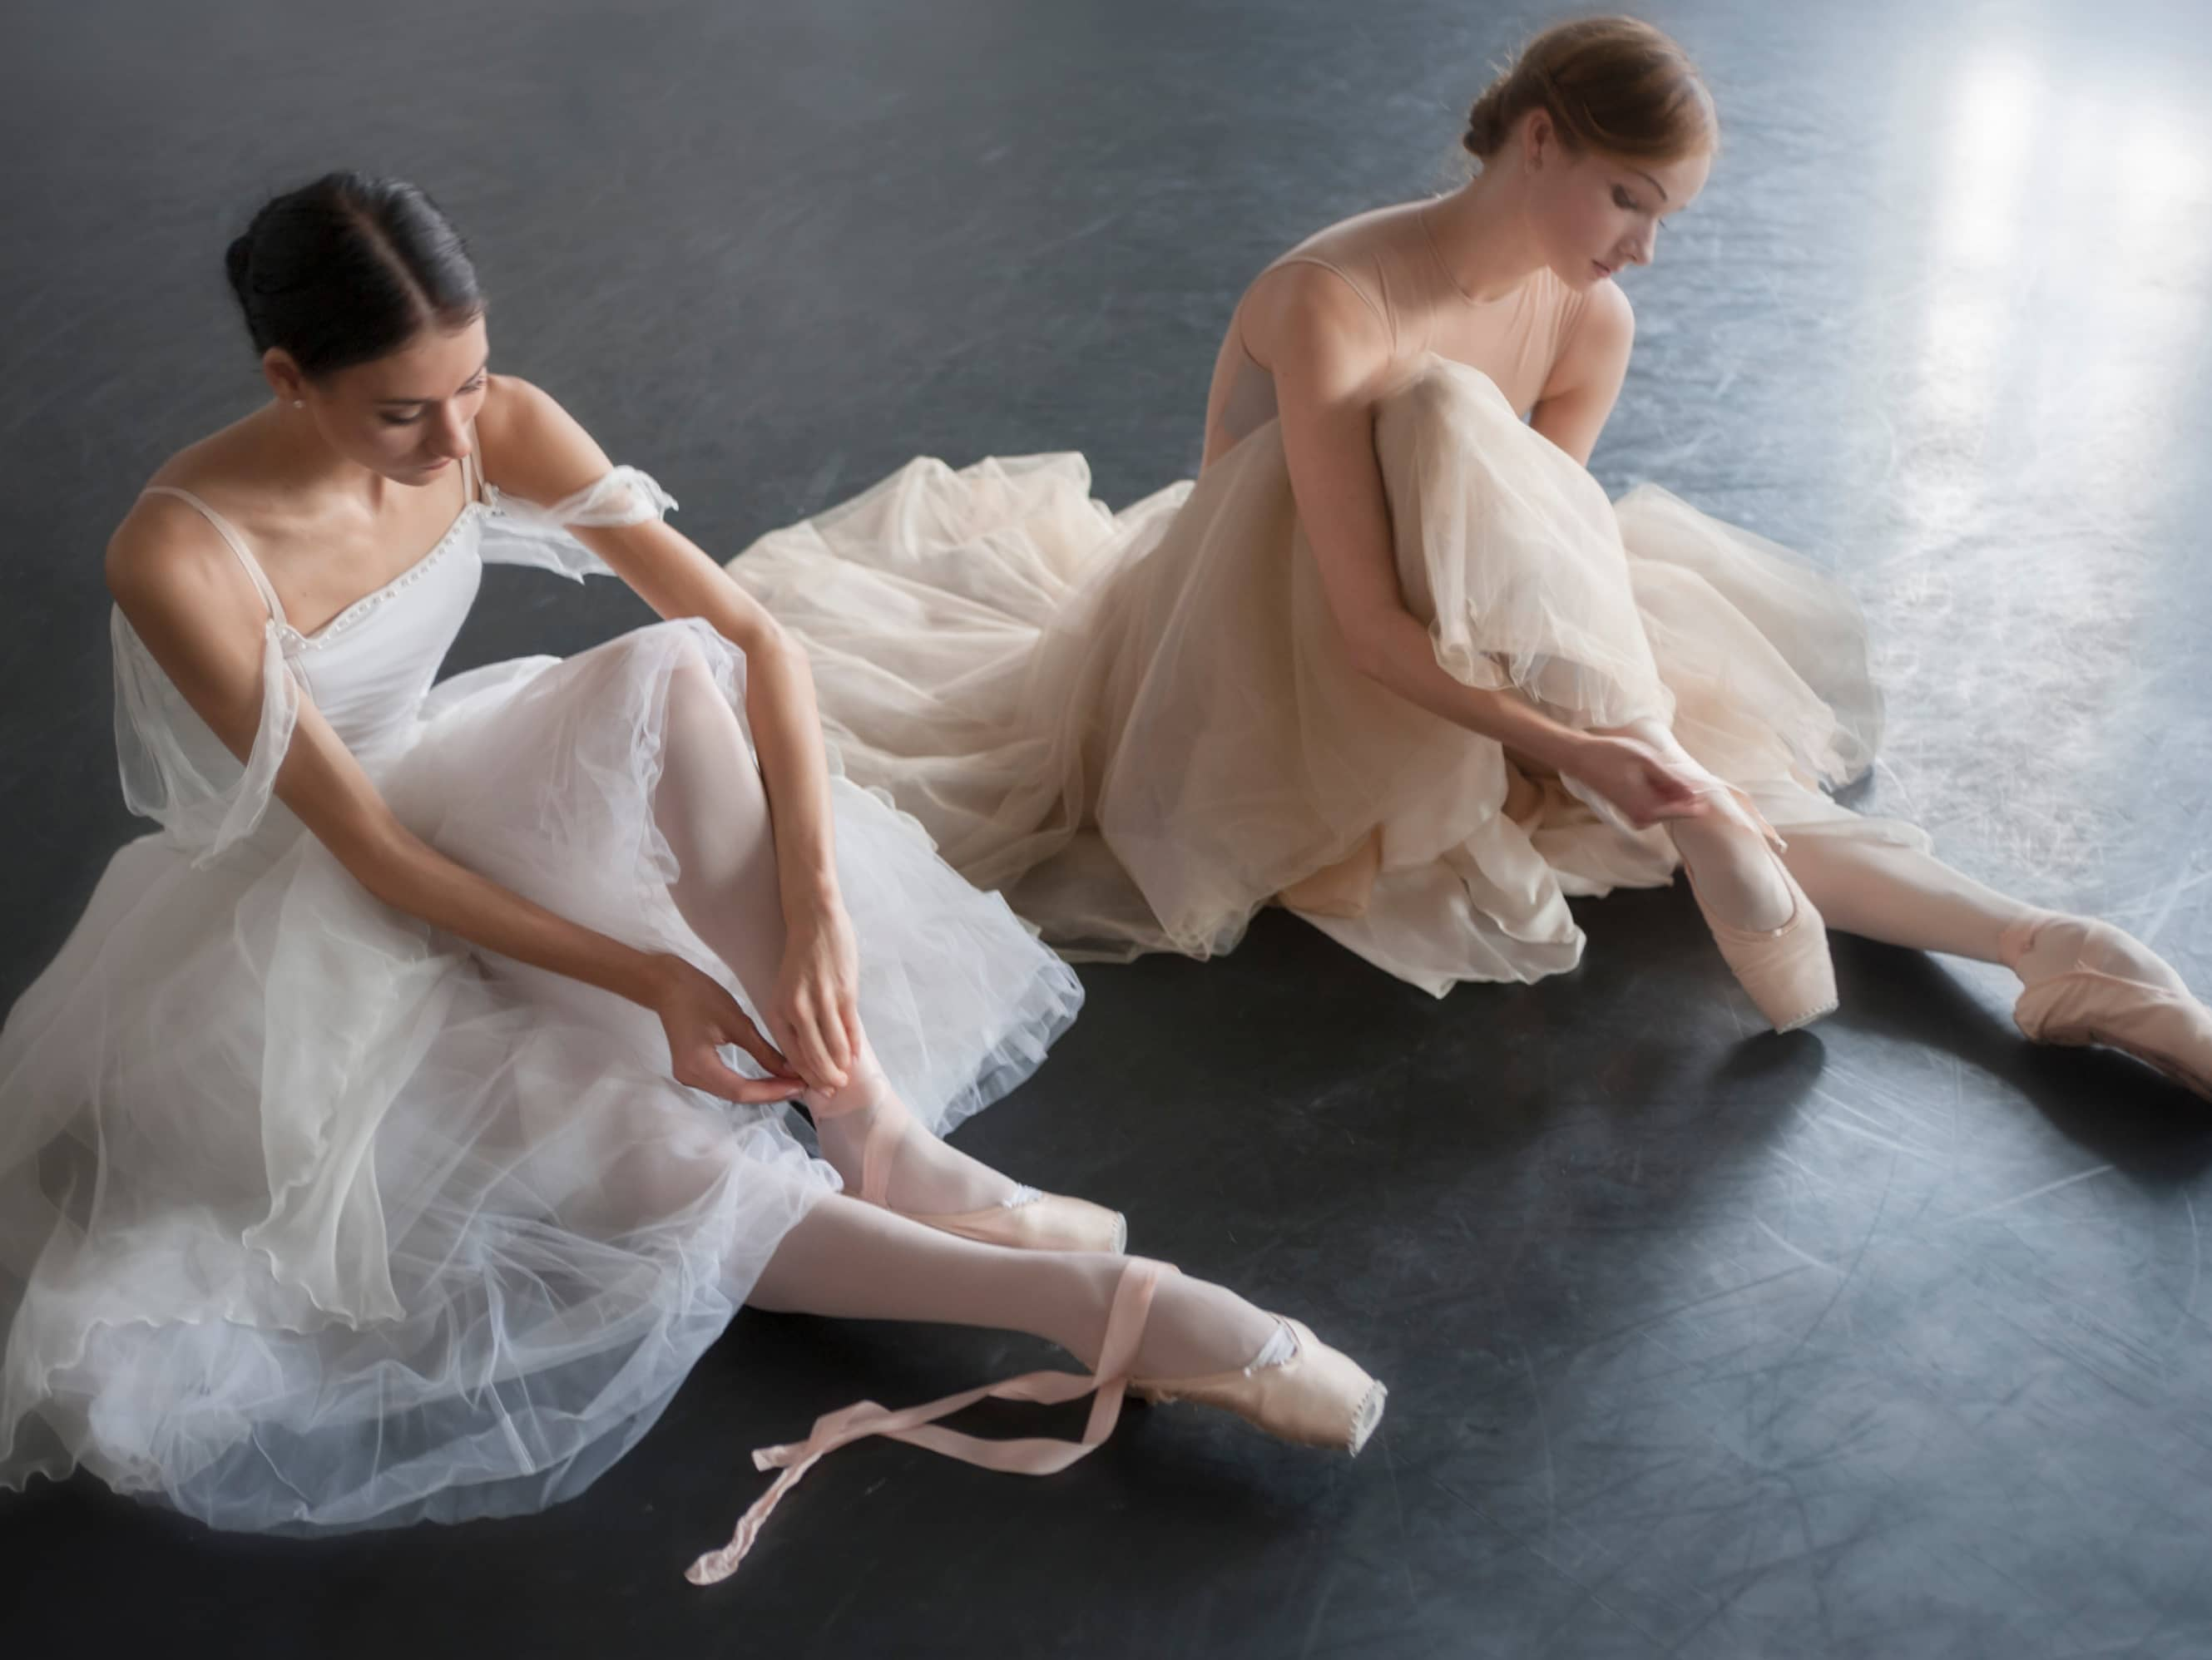 Go behind the scenes at the ballet